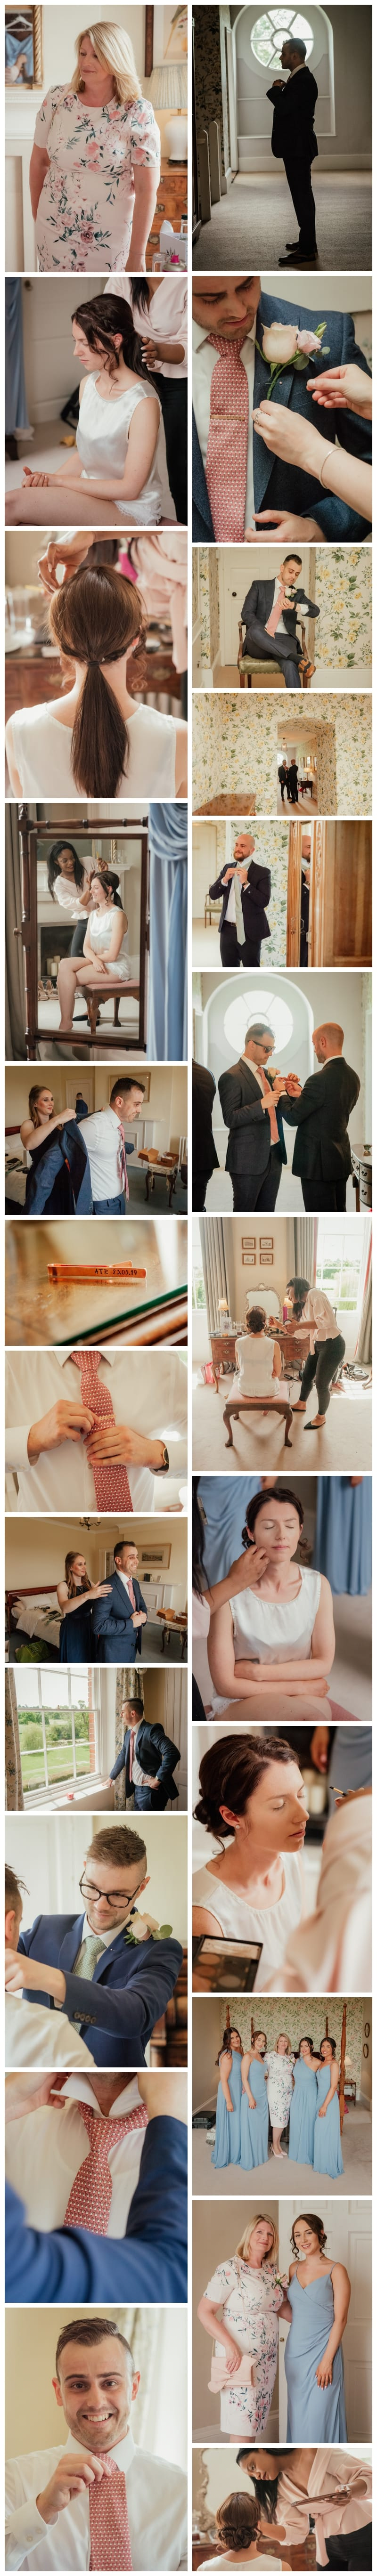 Ardington House bride and groom preparation